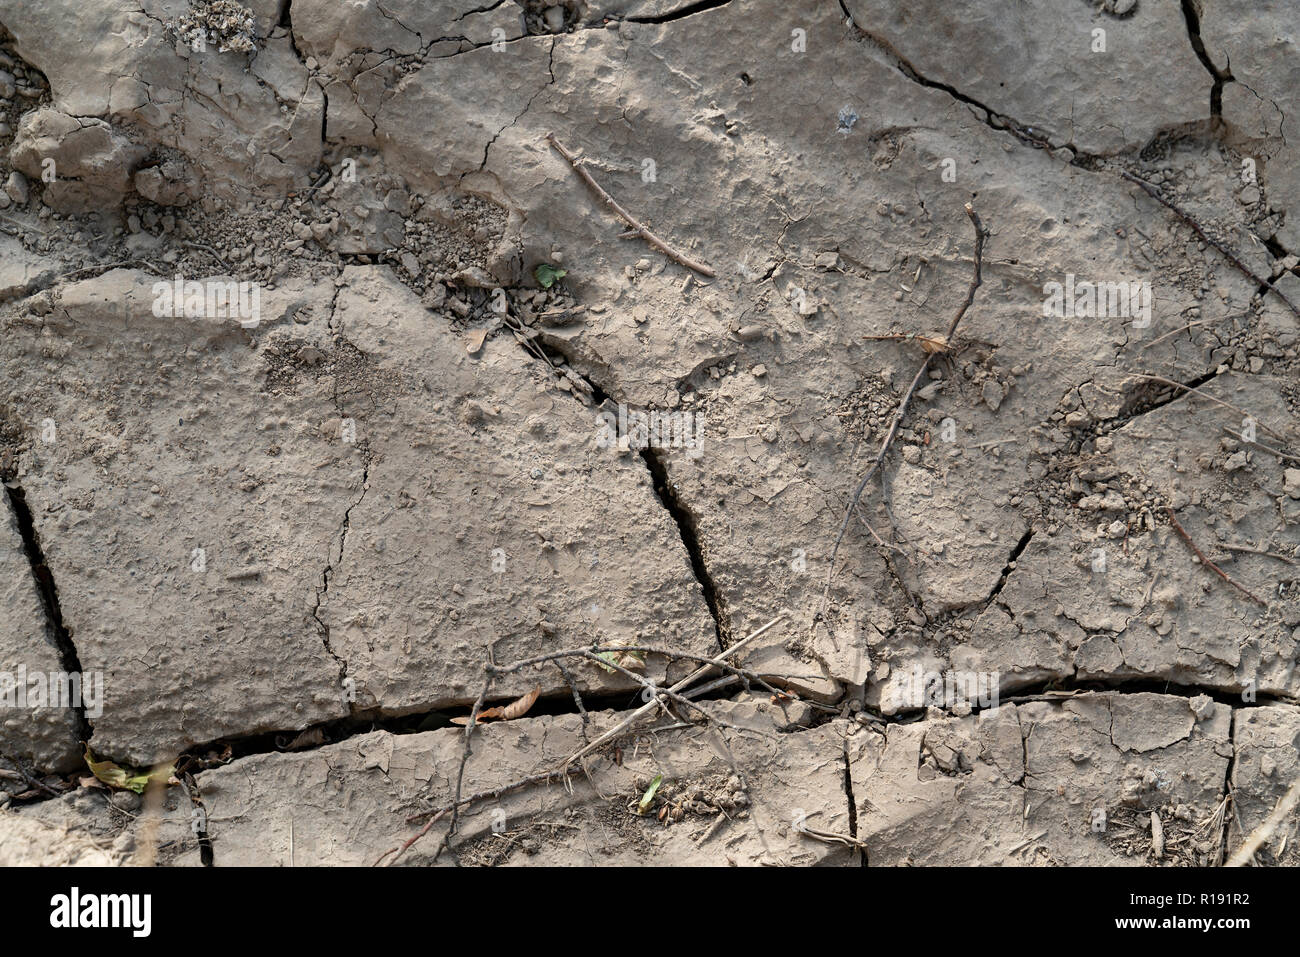 In the hot summer, the soil crusts. Deep cracks form. The surface of the soil is hard and dusty. Close up. - Stock Image